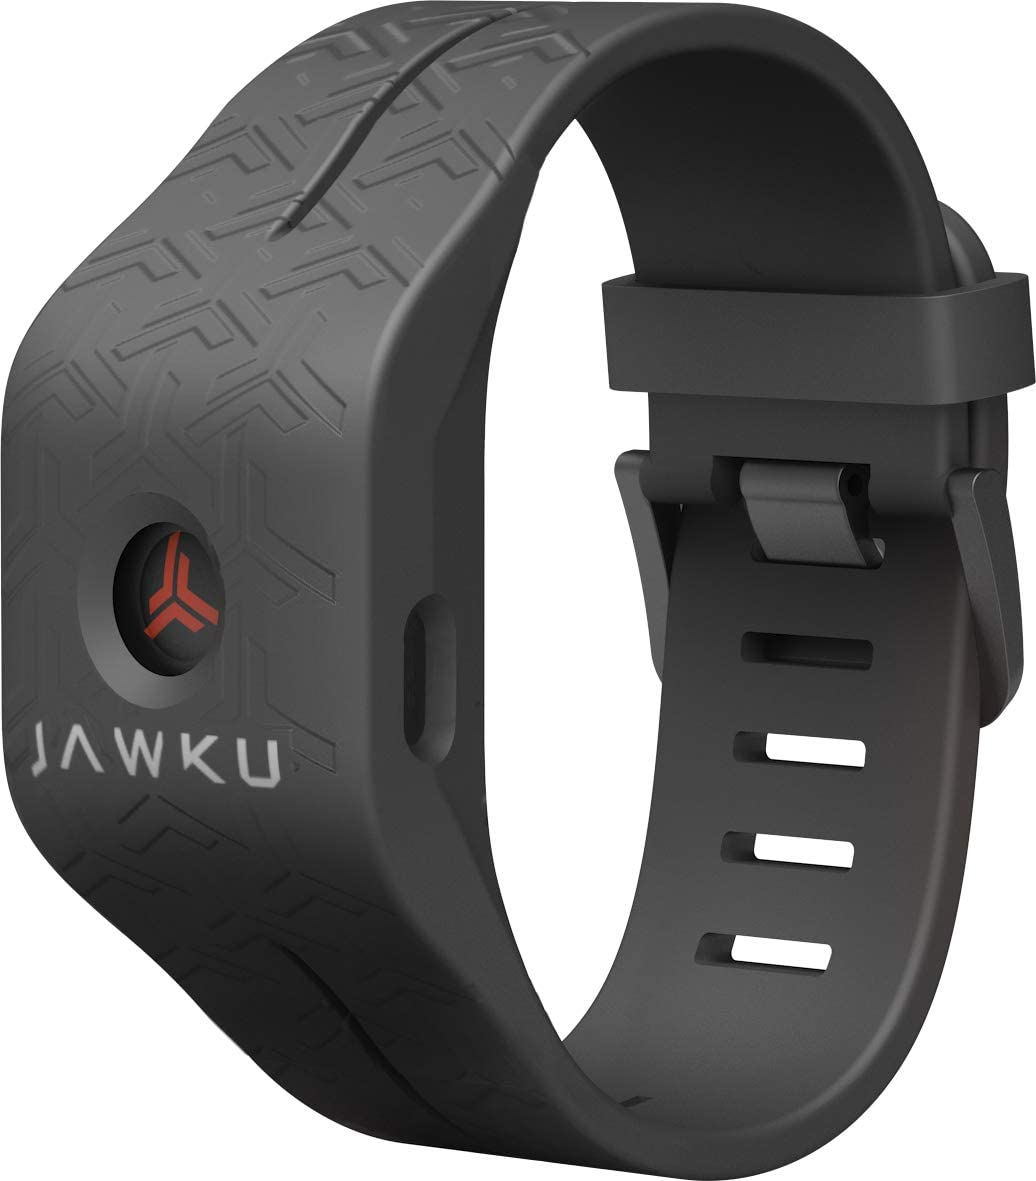 JAWKU – The First Wearable to Measure Sprint Speed, Agility, Reaction Time Test, Train and Track Performance